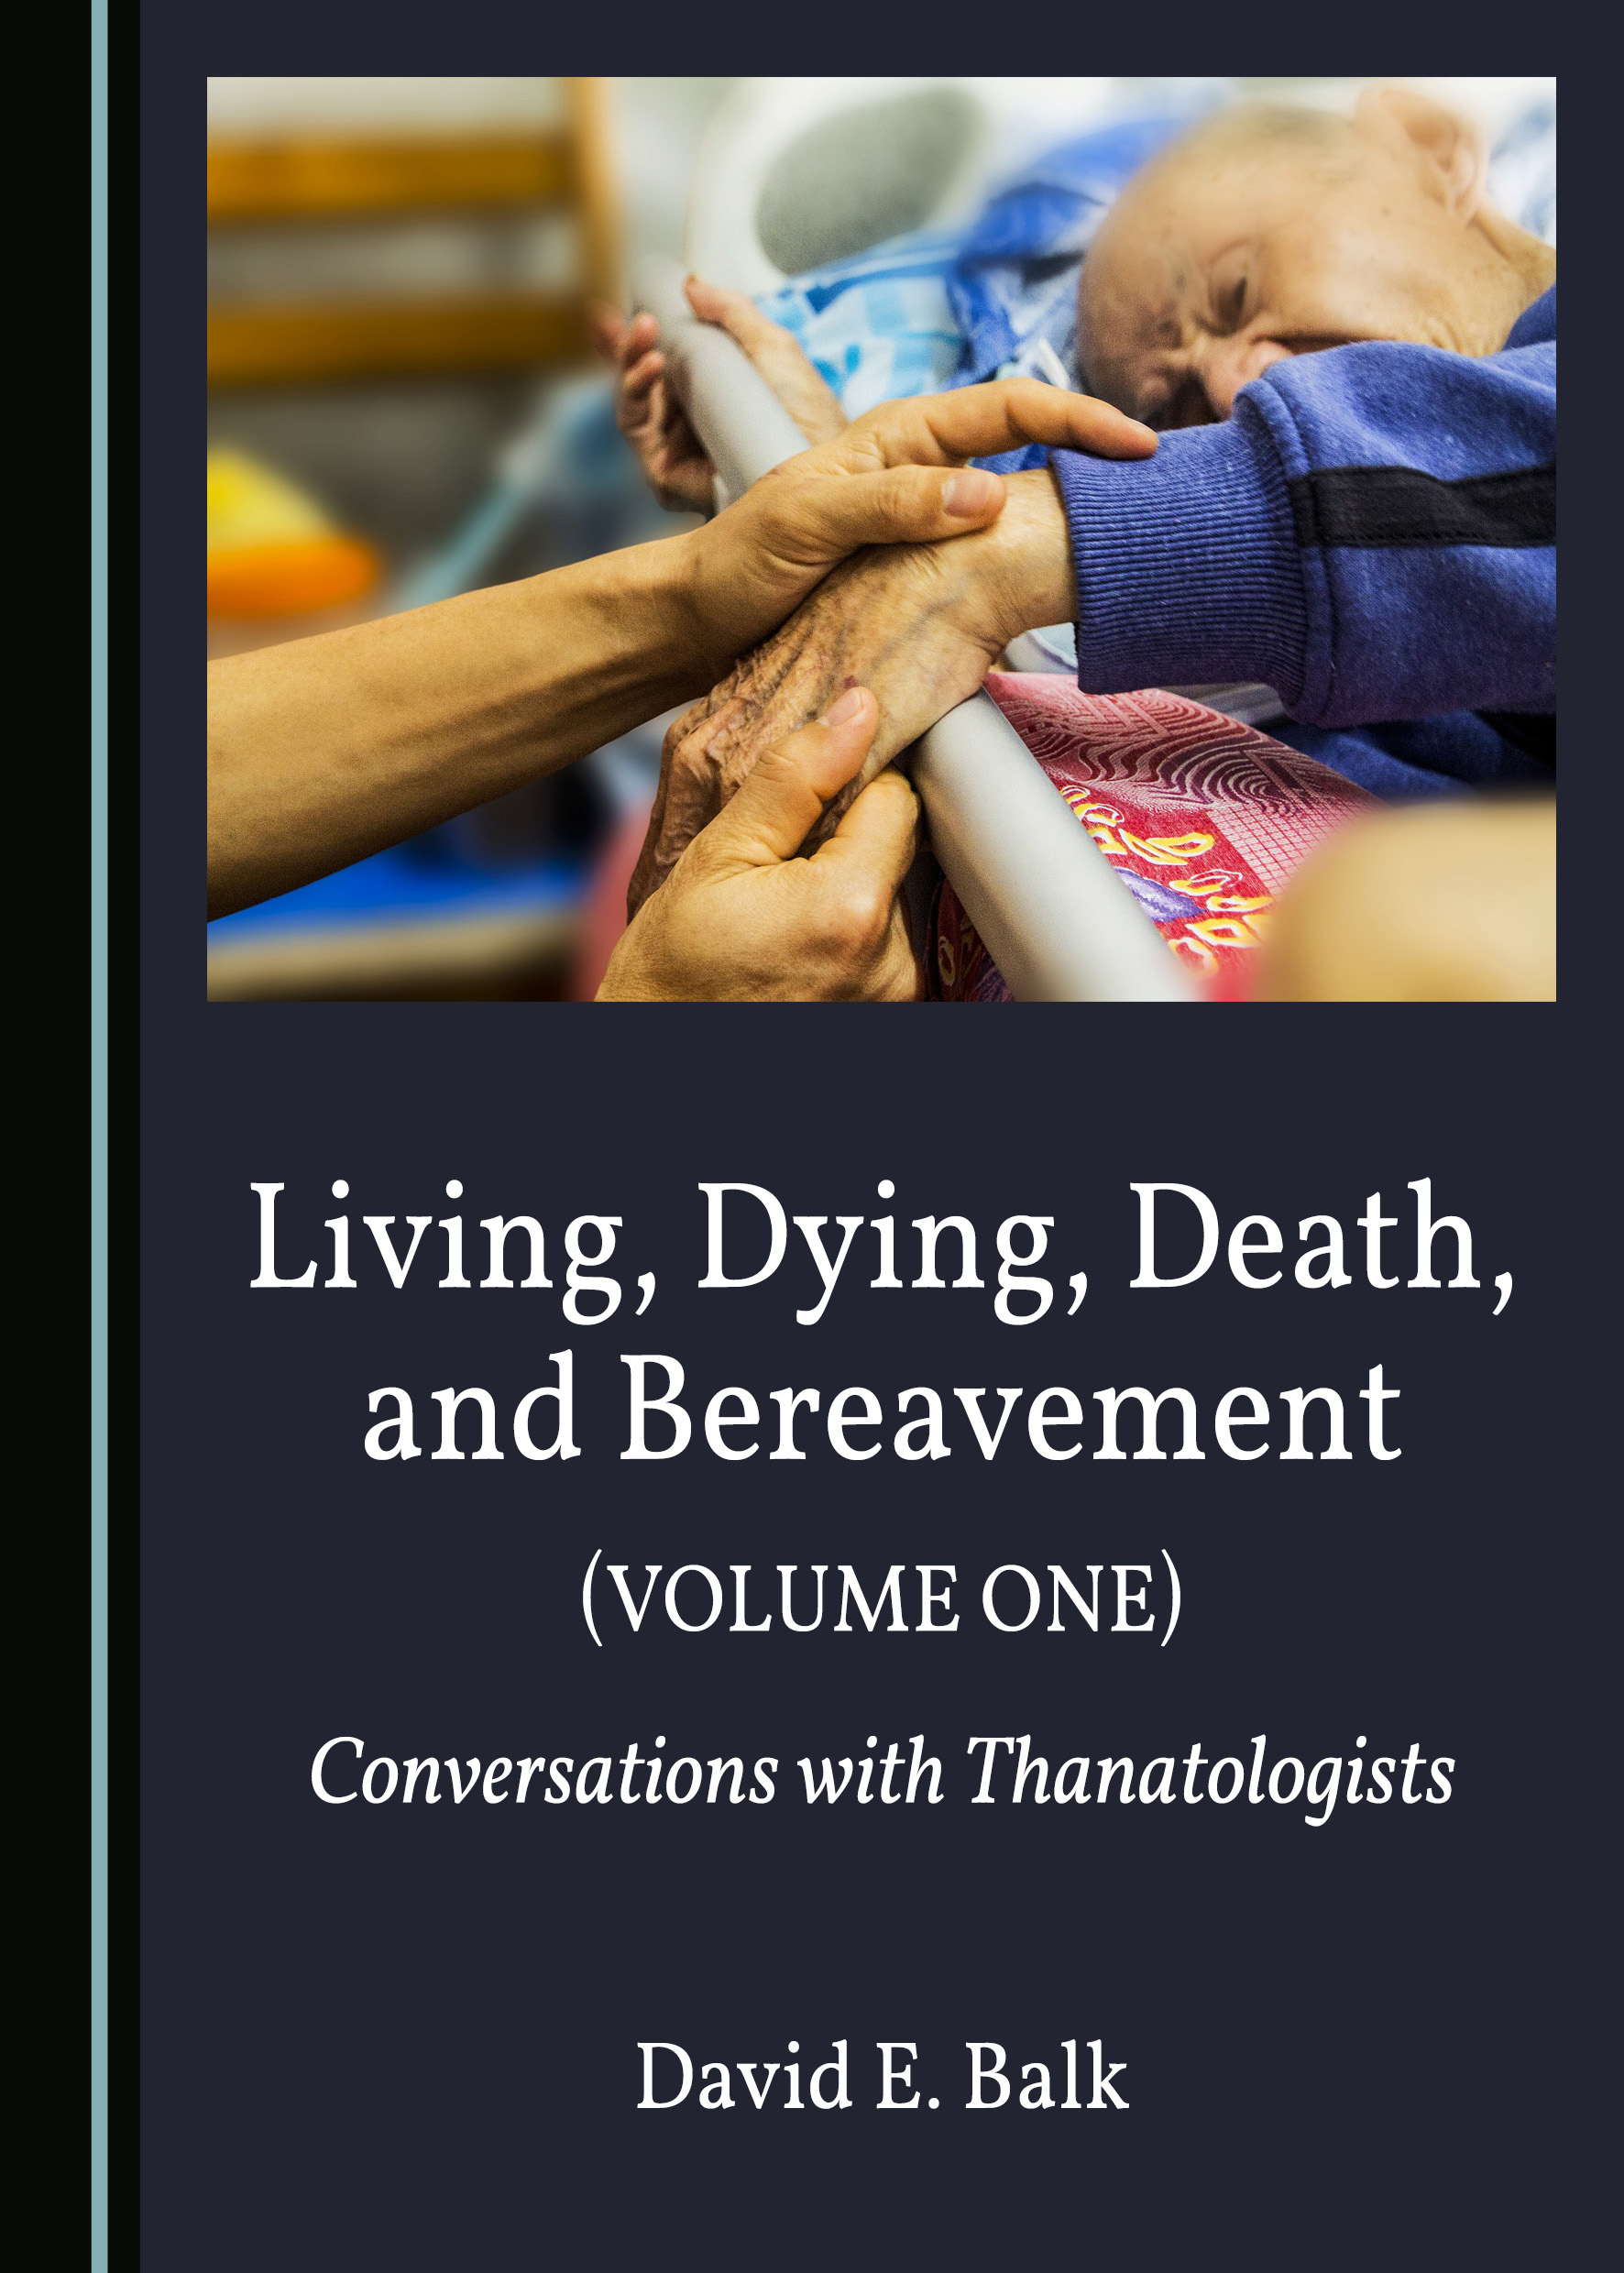 Living, Dying, Death, and Bereavement (Volume One): Conversations with Thanatologists